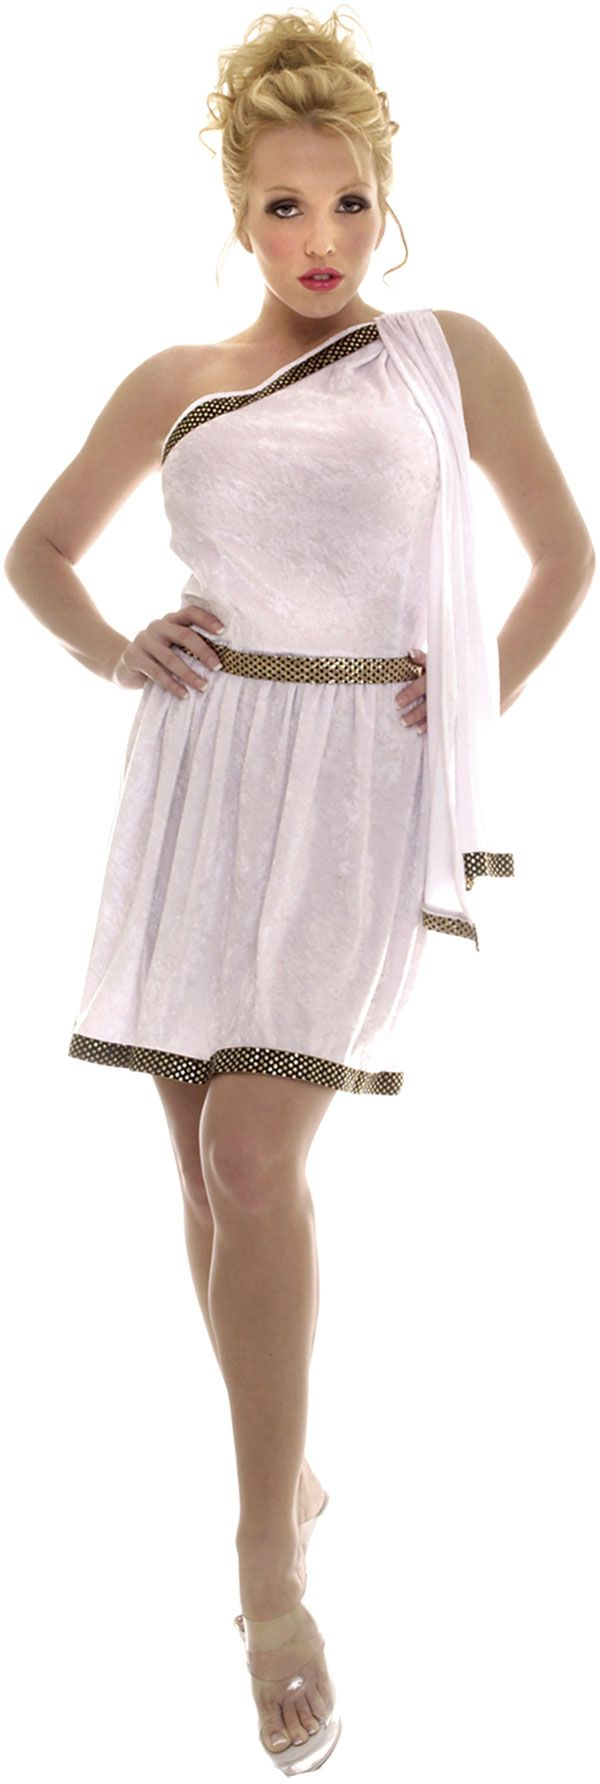 18 best Toga Party images on Pinterest